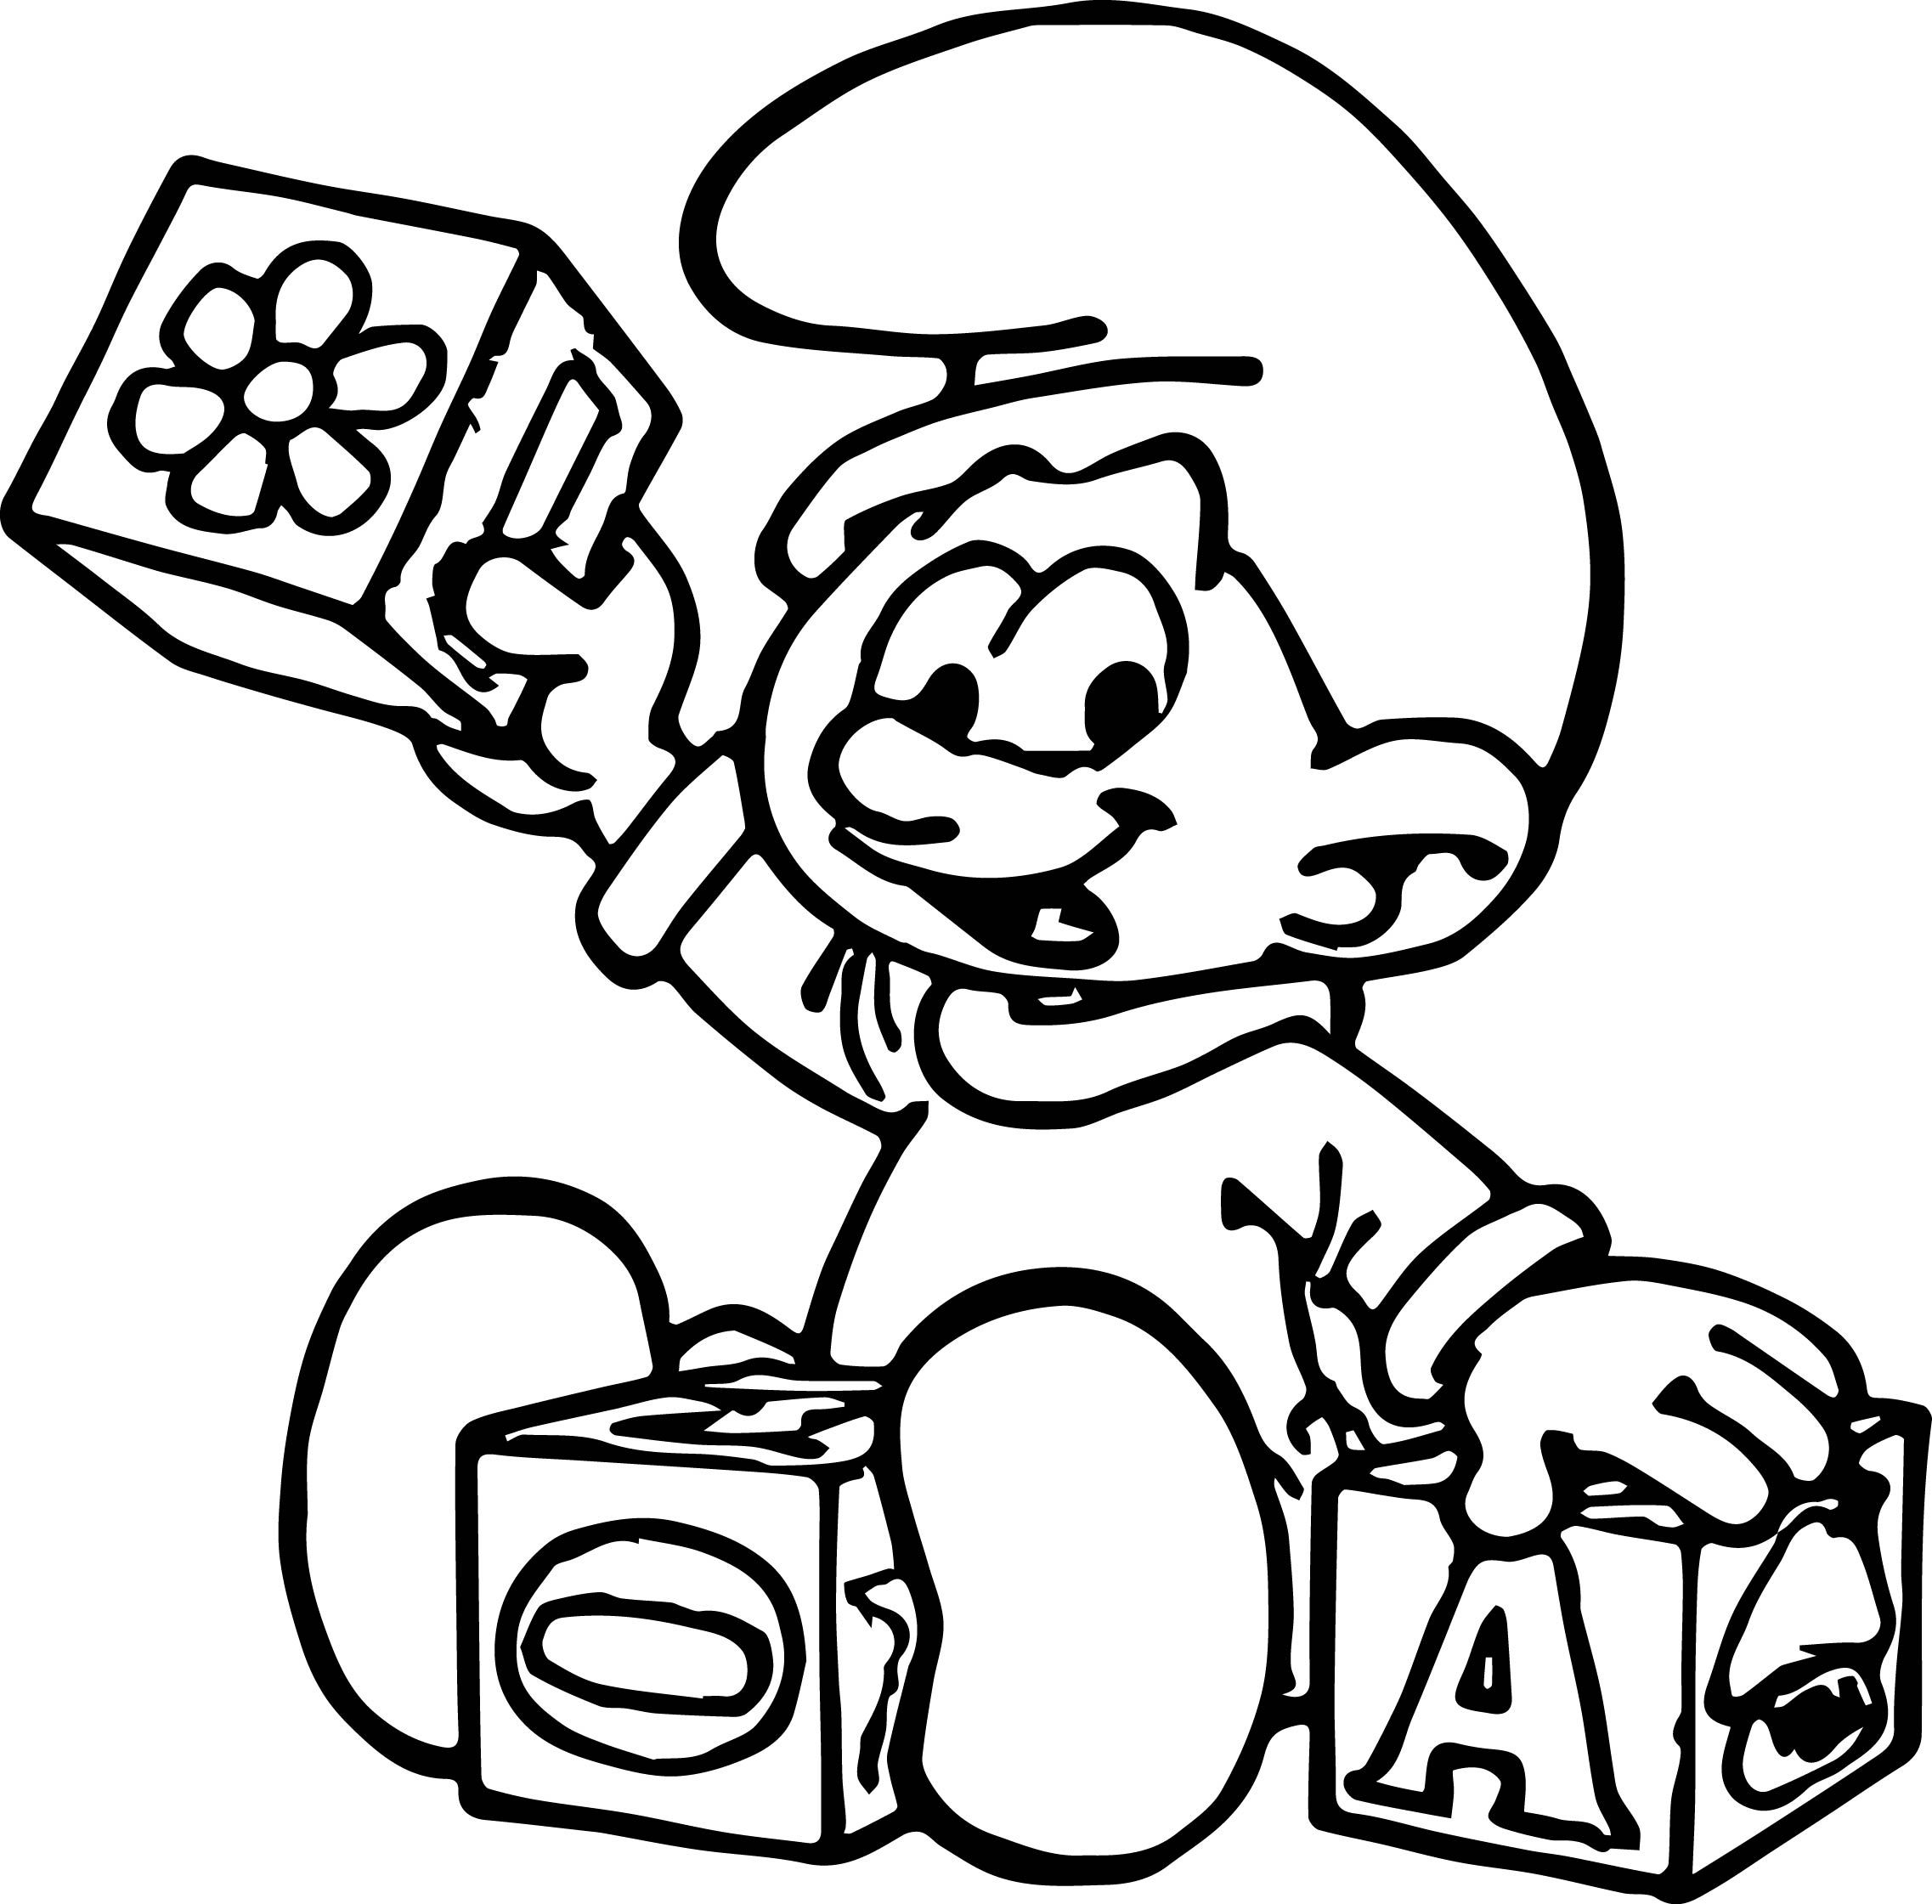 Cool Baby Smurf Playing Toy Coloring Page Coloring Pages Coloring Pages Inspirational Printable Coloring Pages